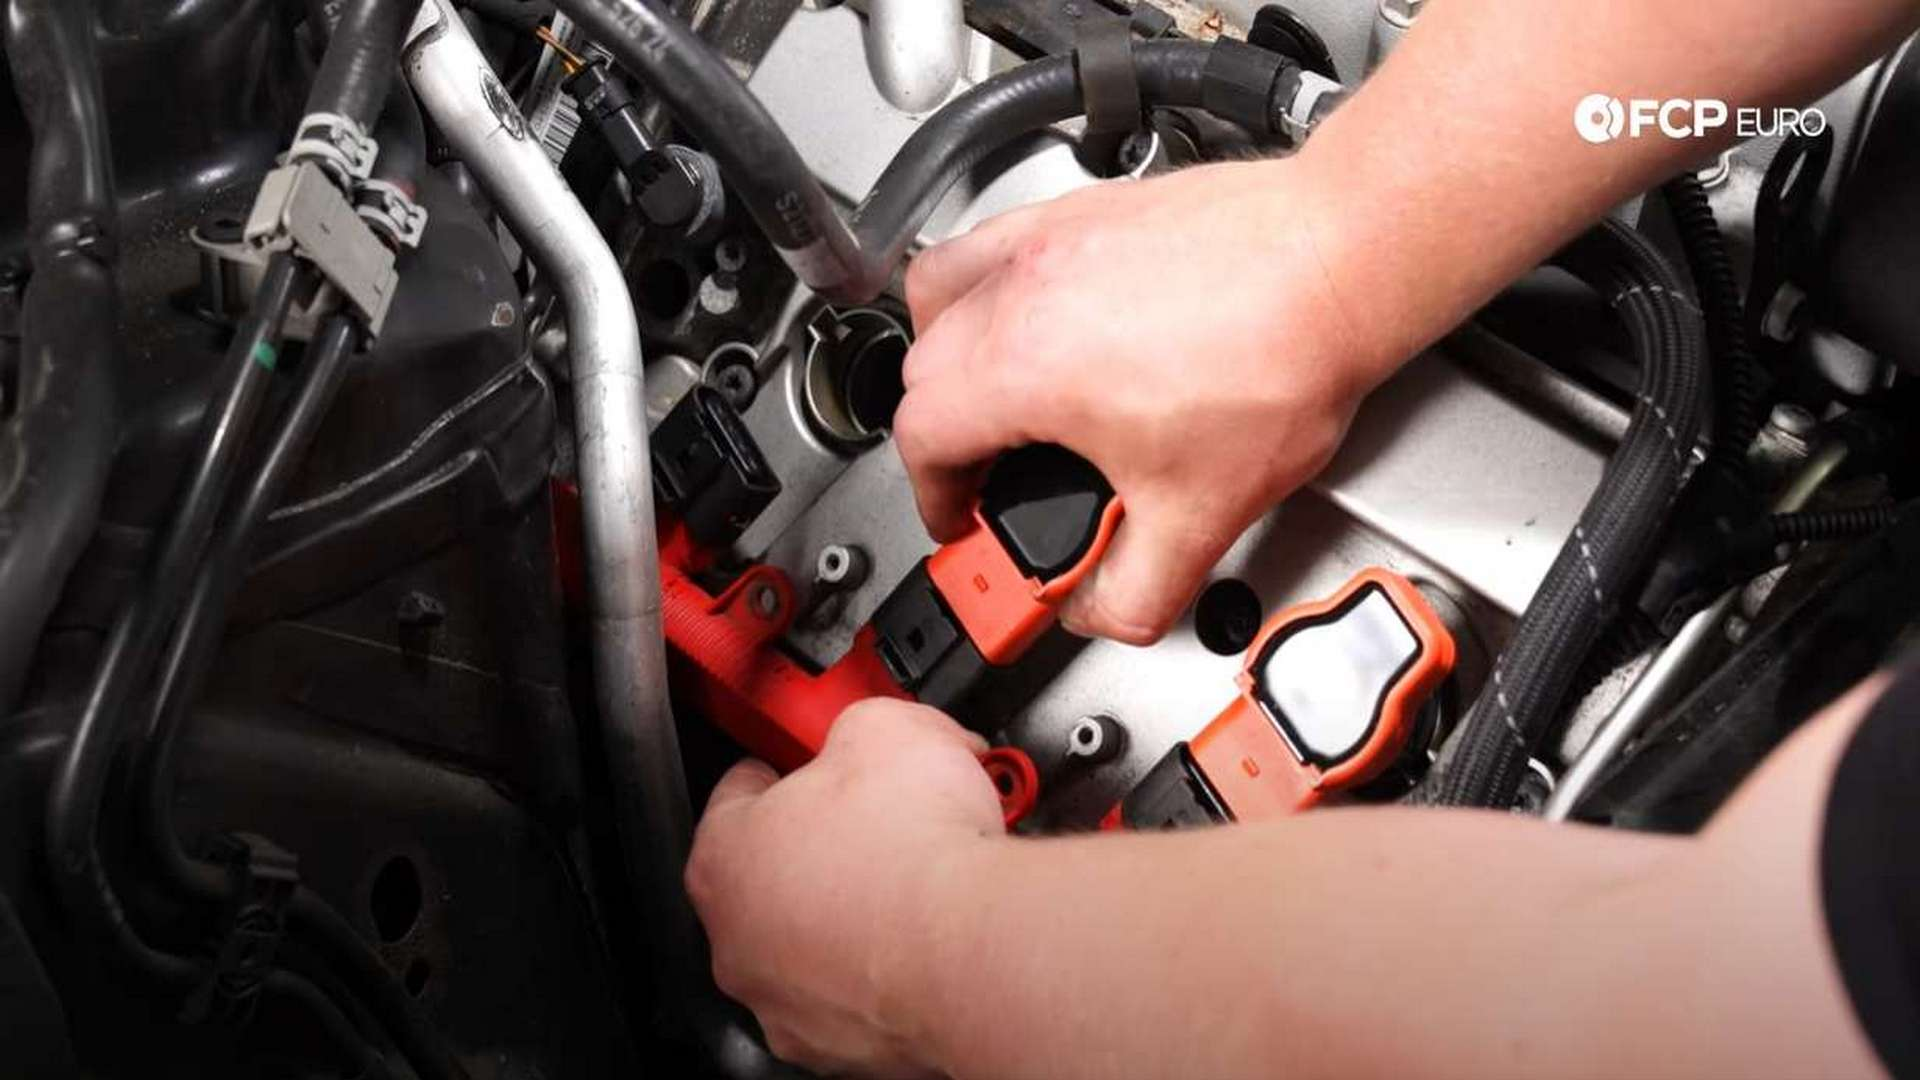 How To Replace Audi Spark Plugs & Ignition Coils (Audi Q5, S4, Q7 B8/B8.5 & More)